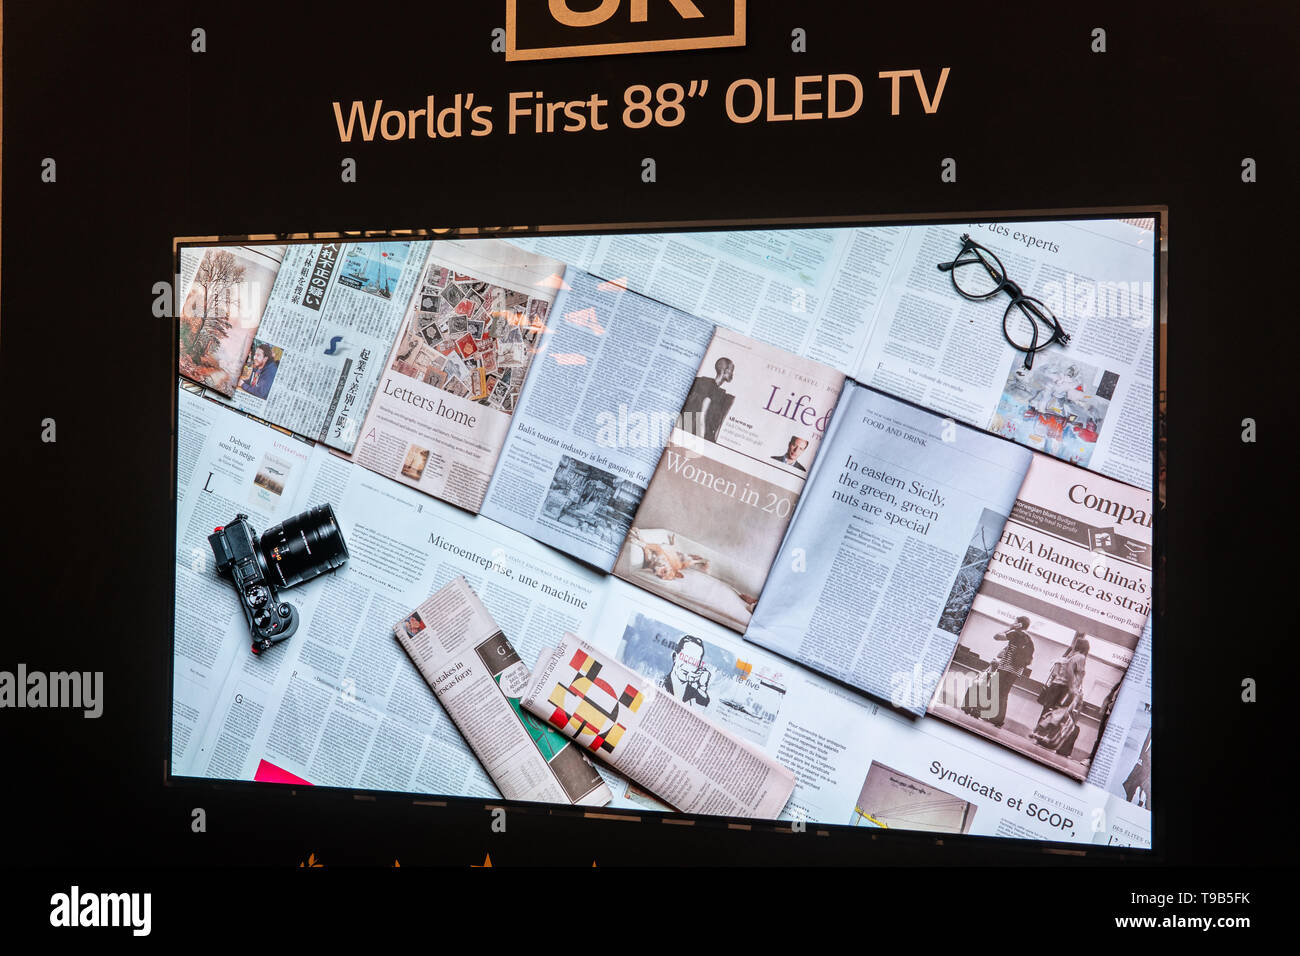 Berlin, Germany, August 31, 2018, LG 8k 88' Smart OLED Premium TV on display, at LG exhibition showroom, stand at Global Innovations Show IFA 2018, - Stock Image